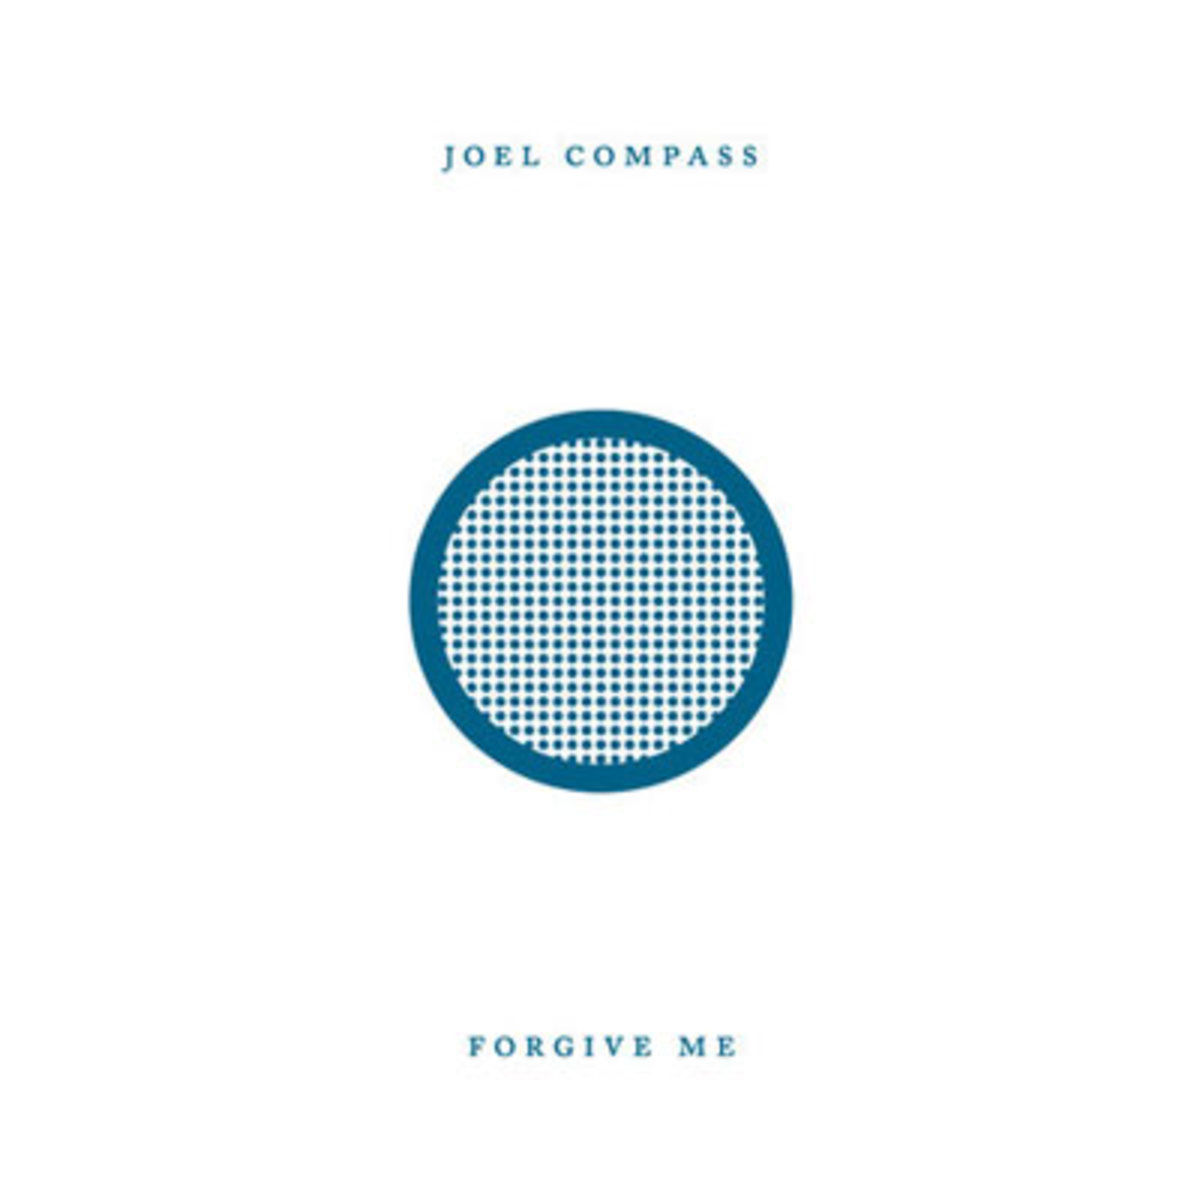 joelcompass-forgiveme.jpg